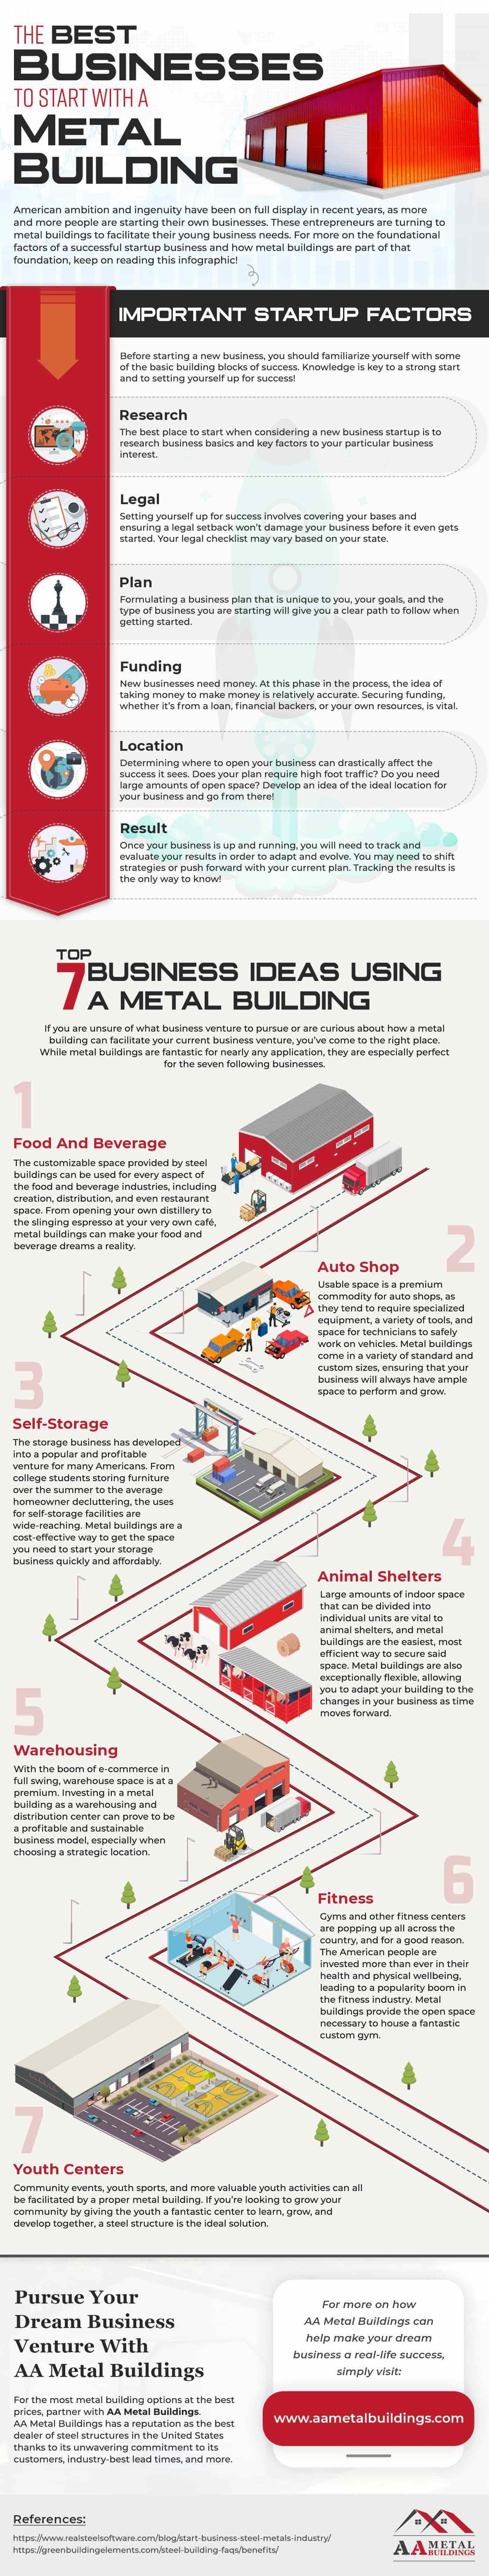 The Best Businesses to Start with a Metal Building  #infographic